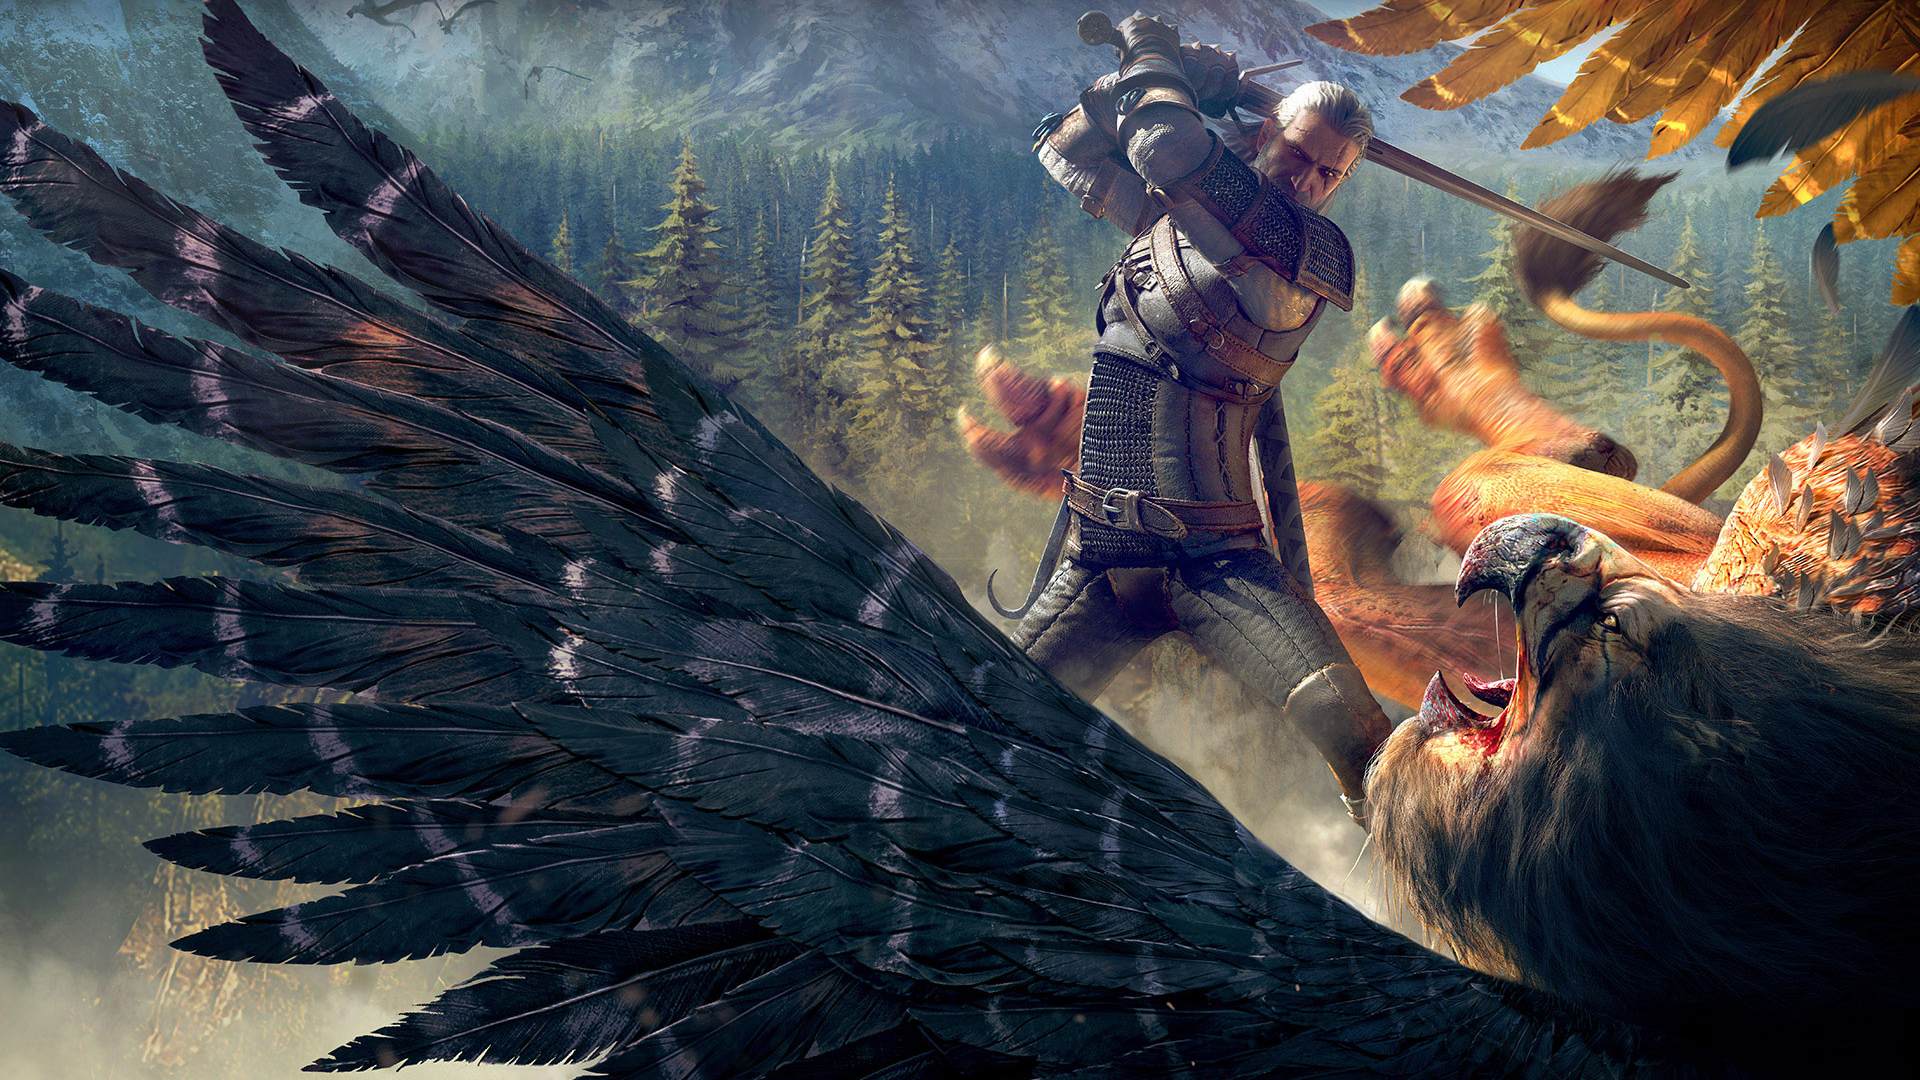 HD Wallpapers The Witcher 3 Wild Hunt Witcher Griffin